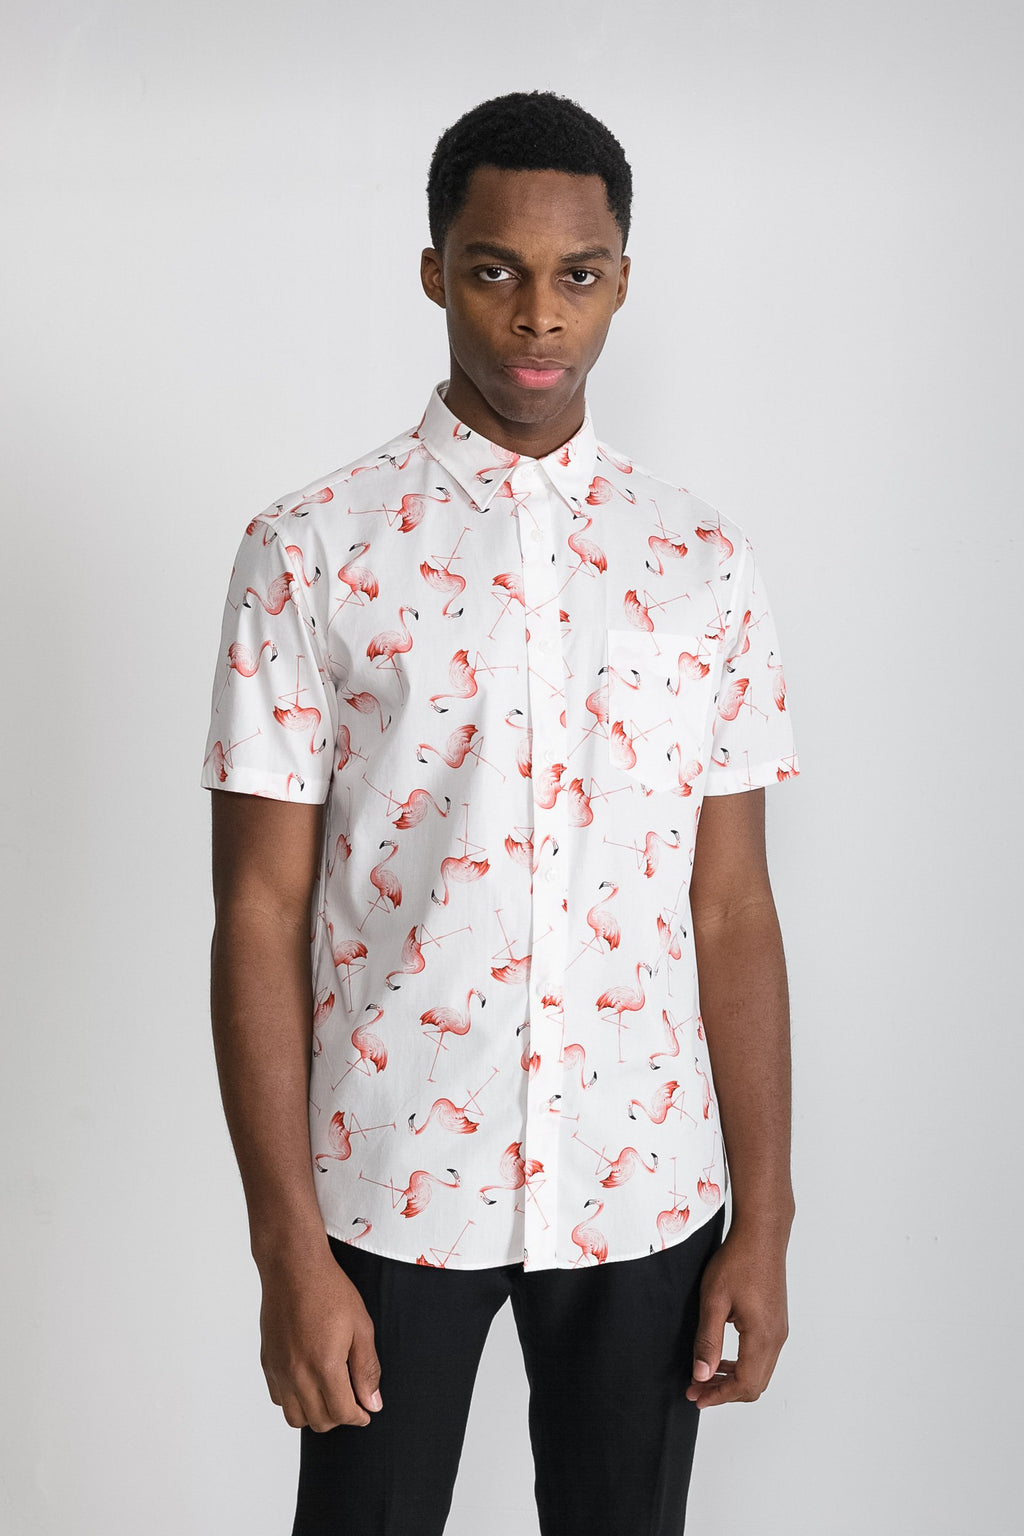 Japanese Flamingo Print in White 001